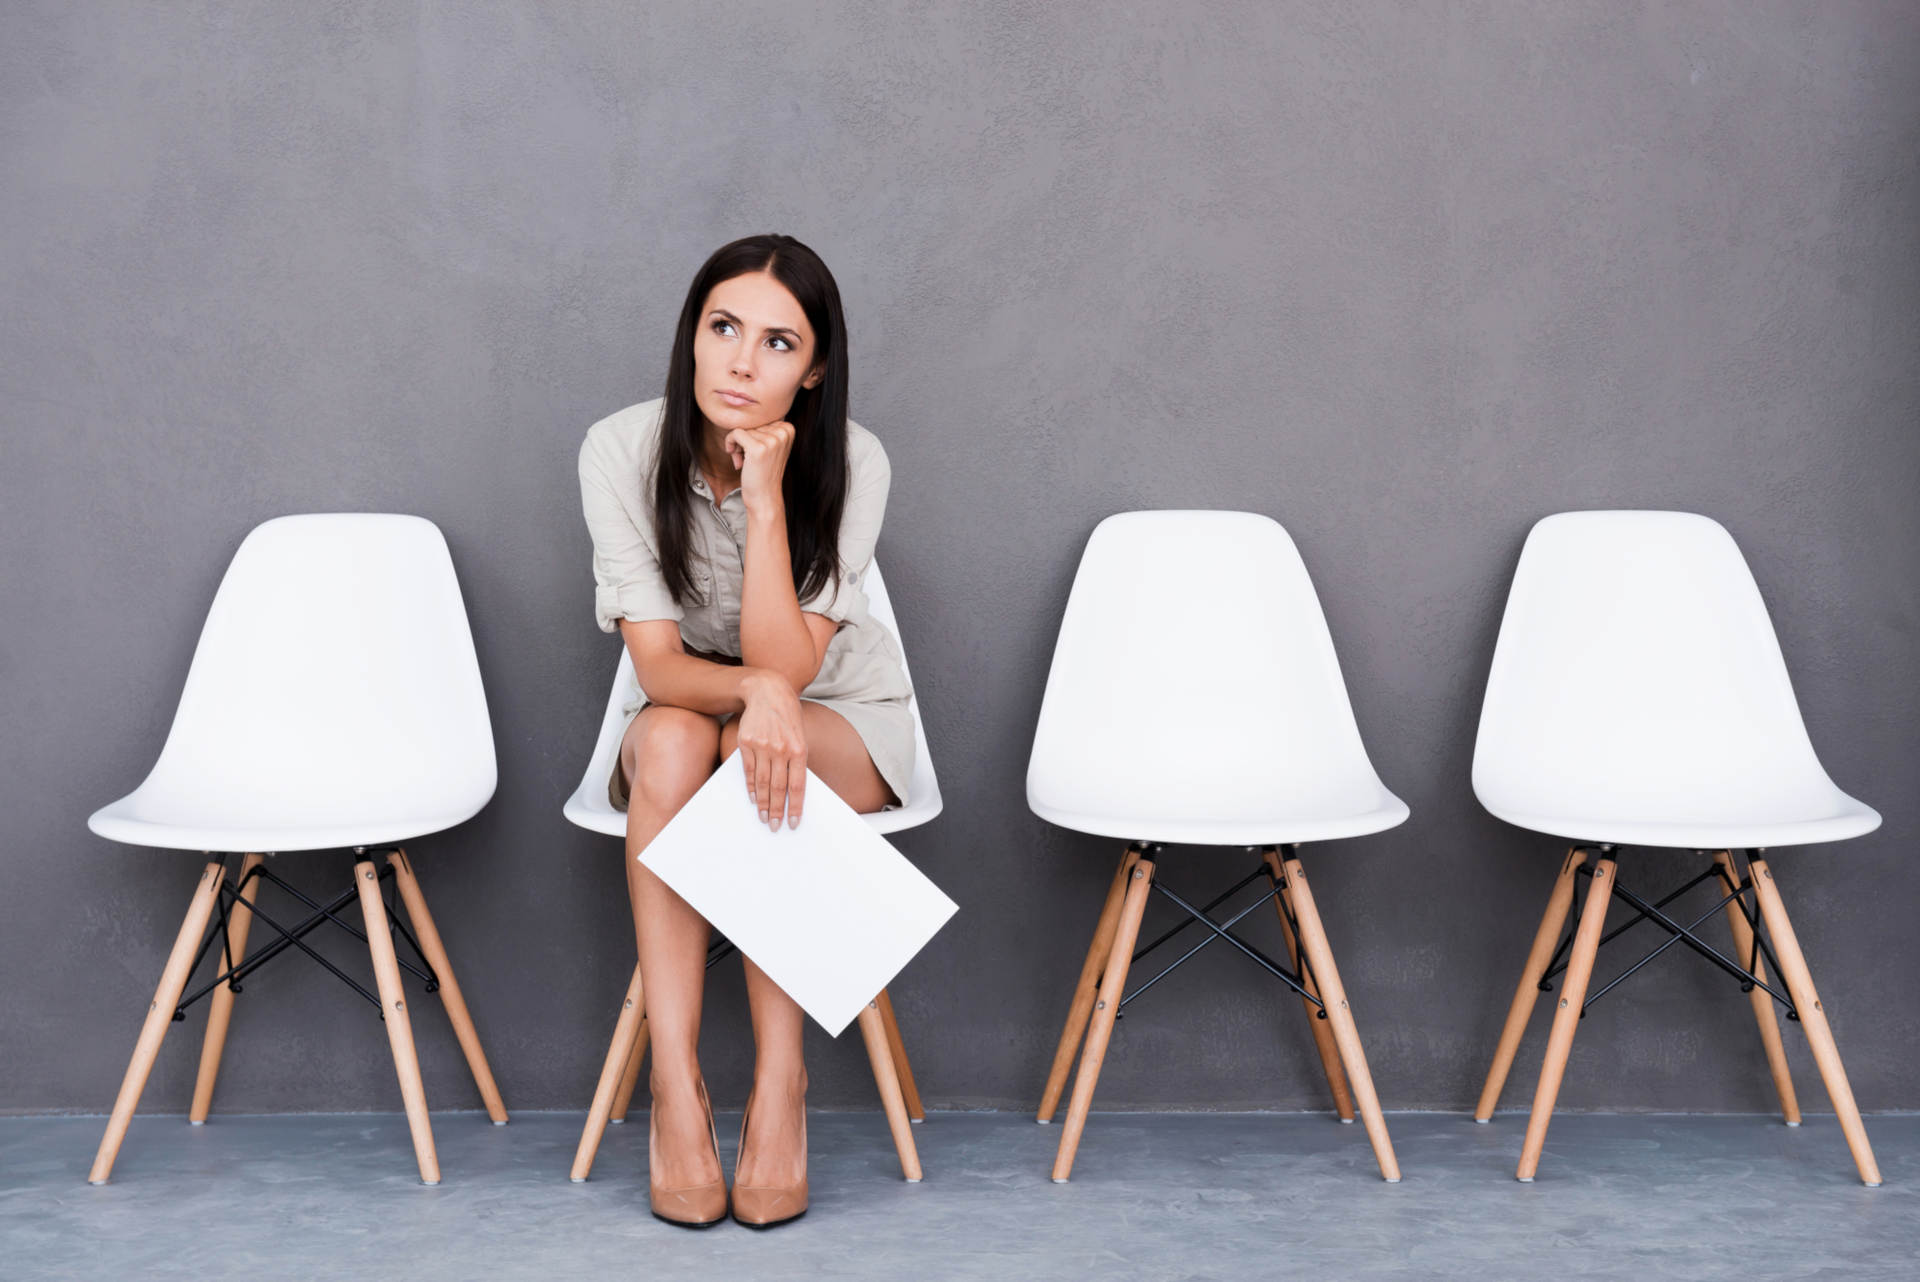 The 5 Worst Excuses We've Heard for Not Hiring Women